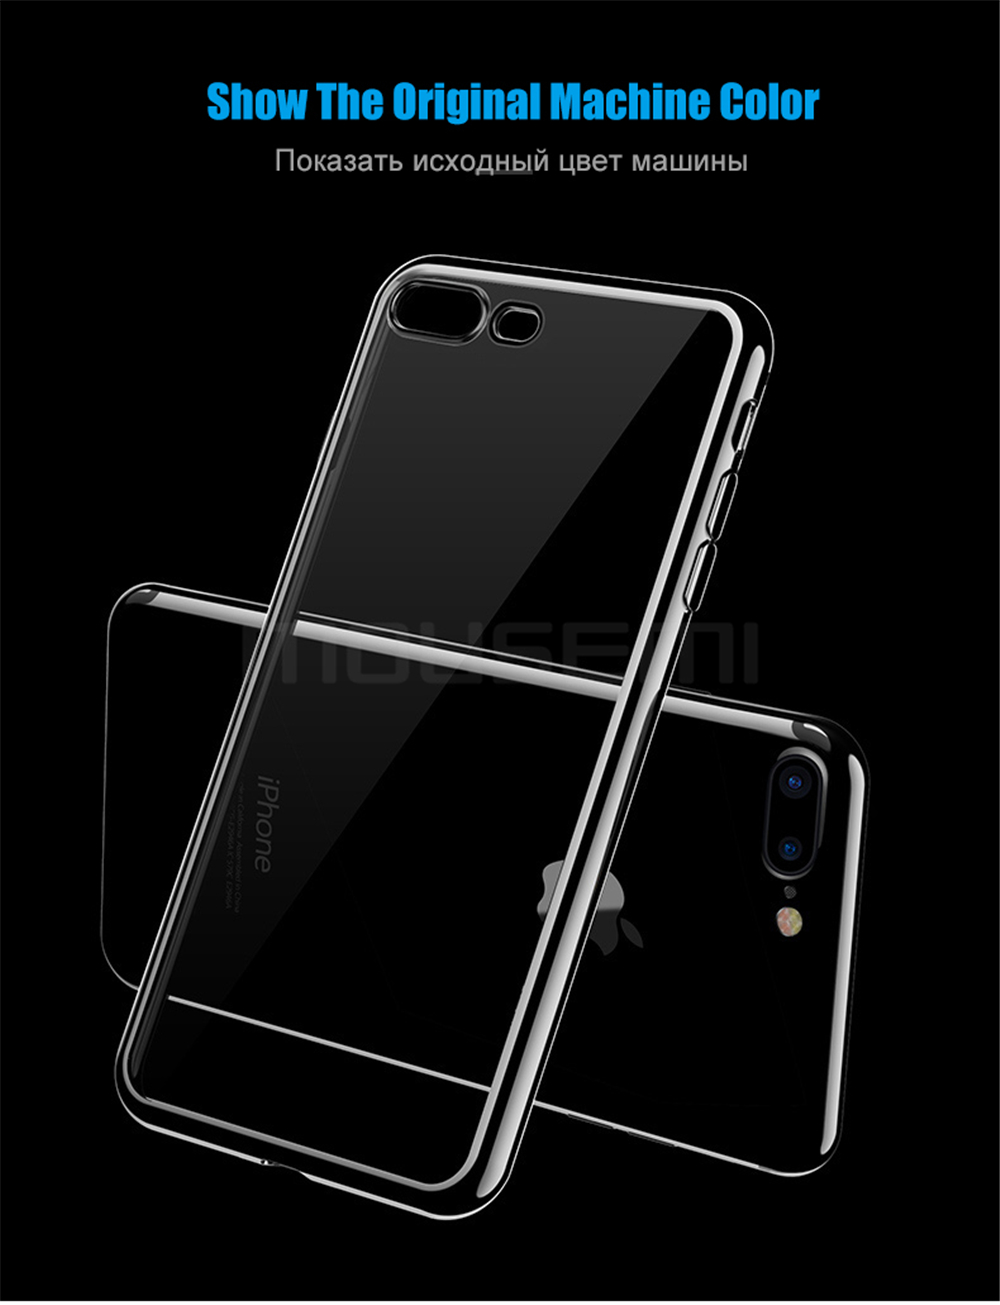 MOUSEMI Phone Cases For iPhone 7 Case Transparent Silicone Plating Soft Cover For iPhone 7 Plus Case For iPhone 77 Plus (6)